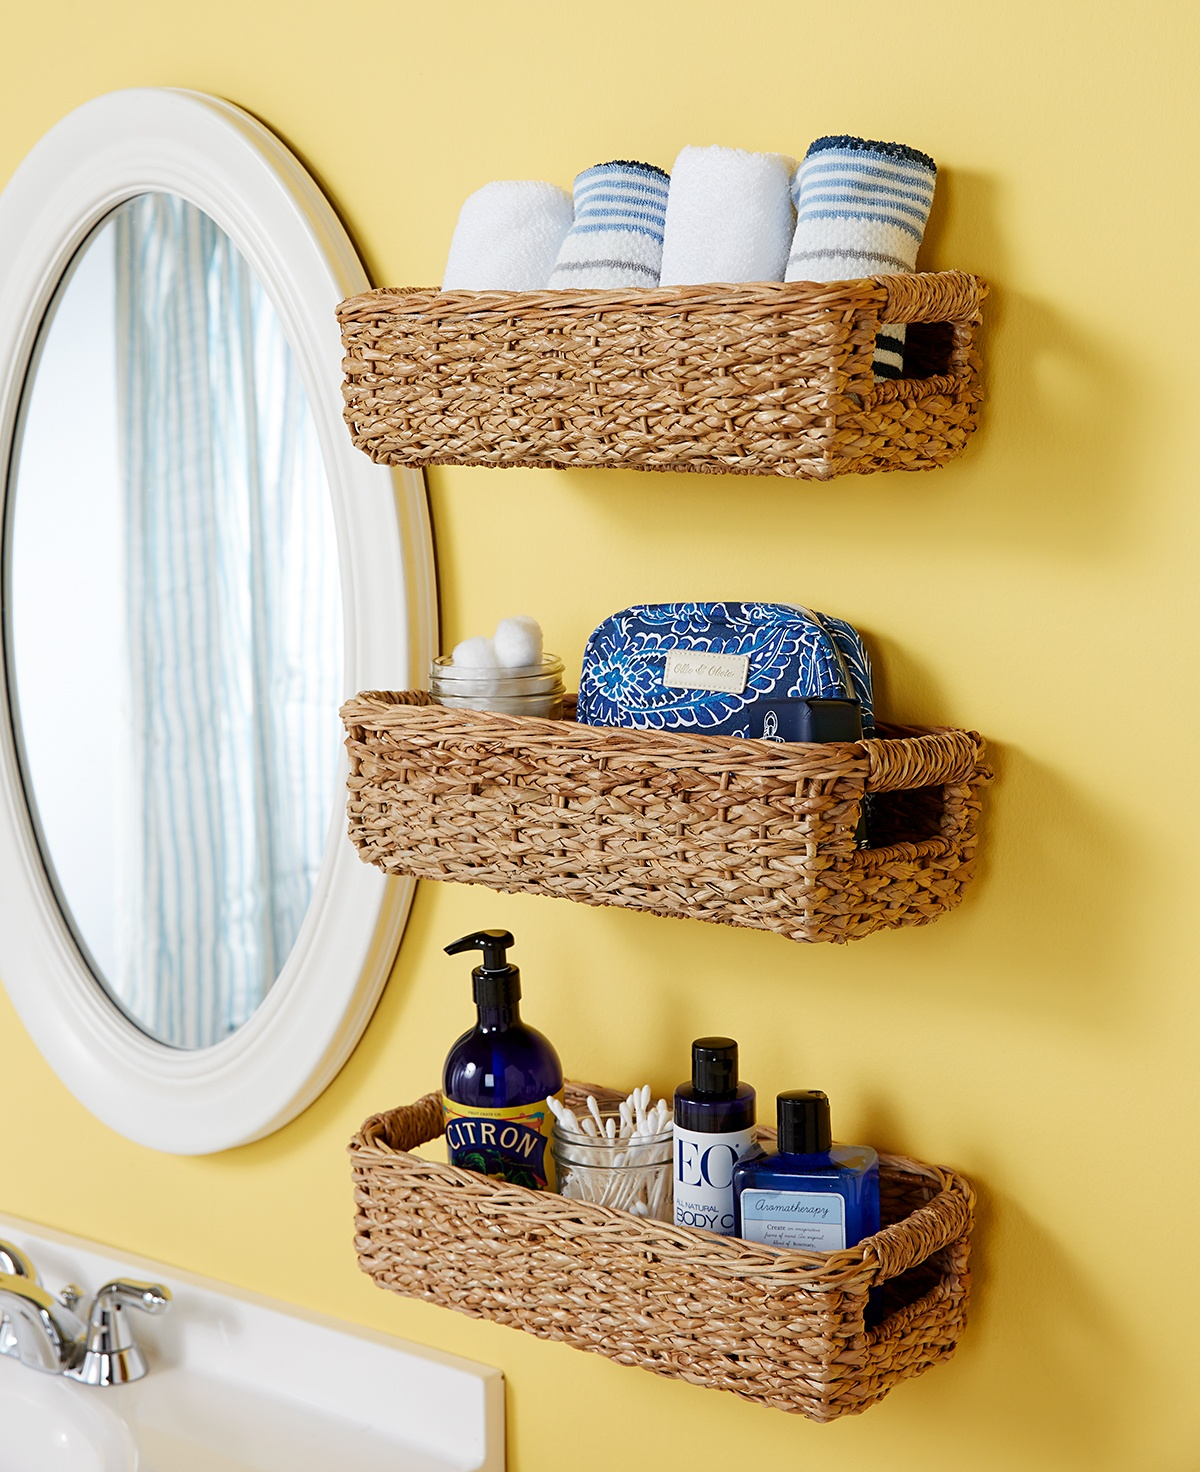 Turn an old basket into a towel organizer